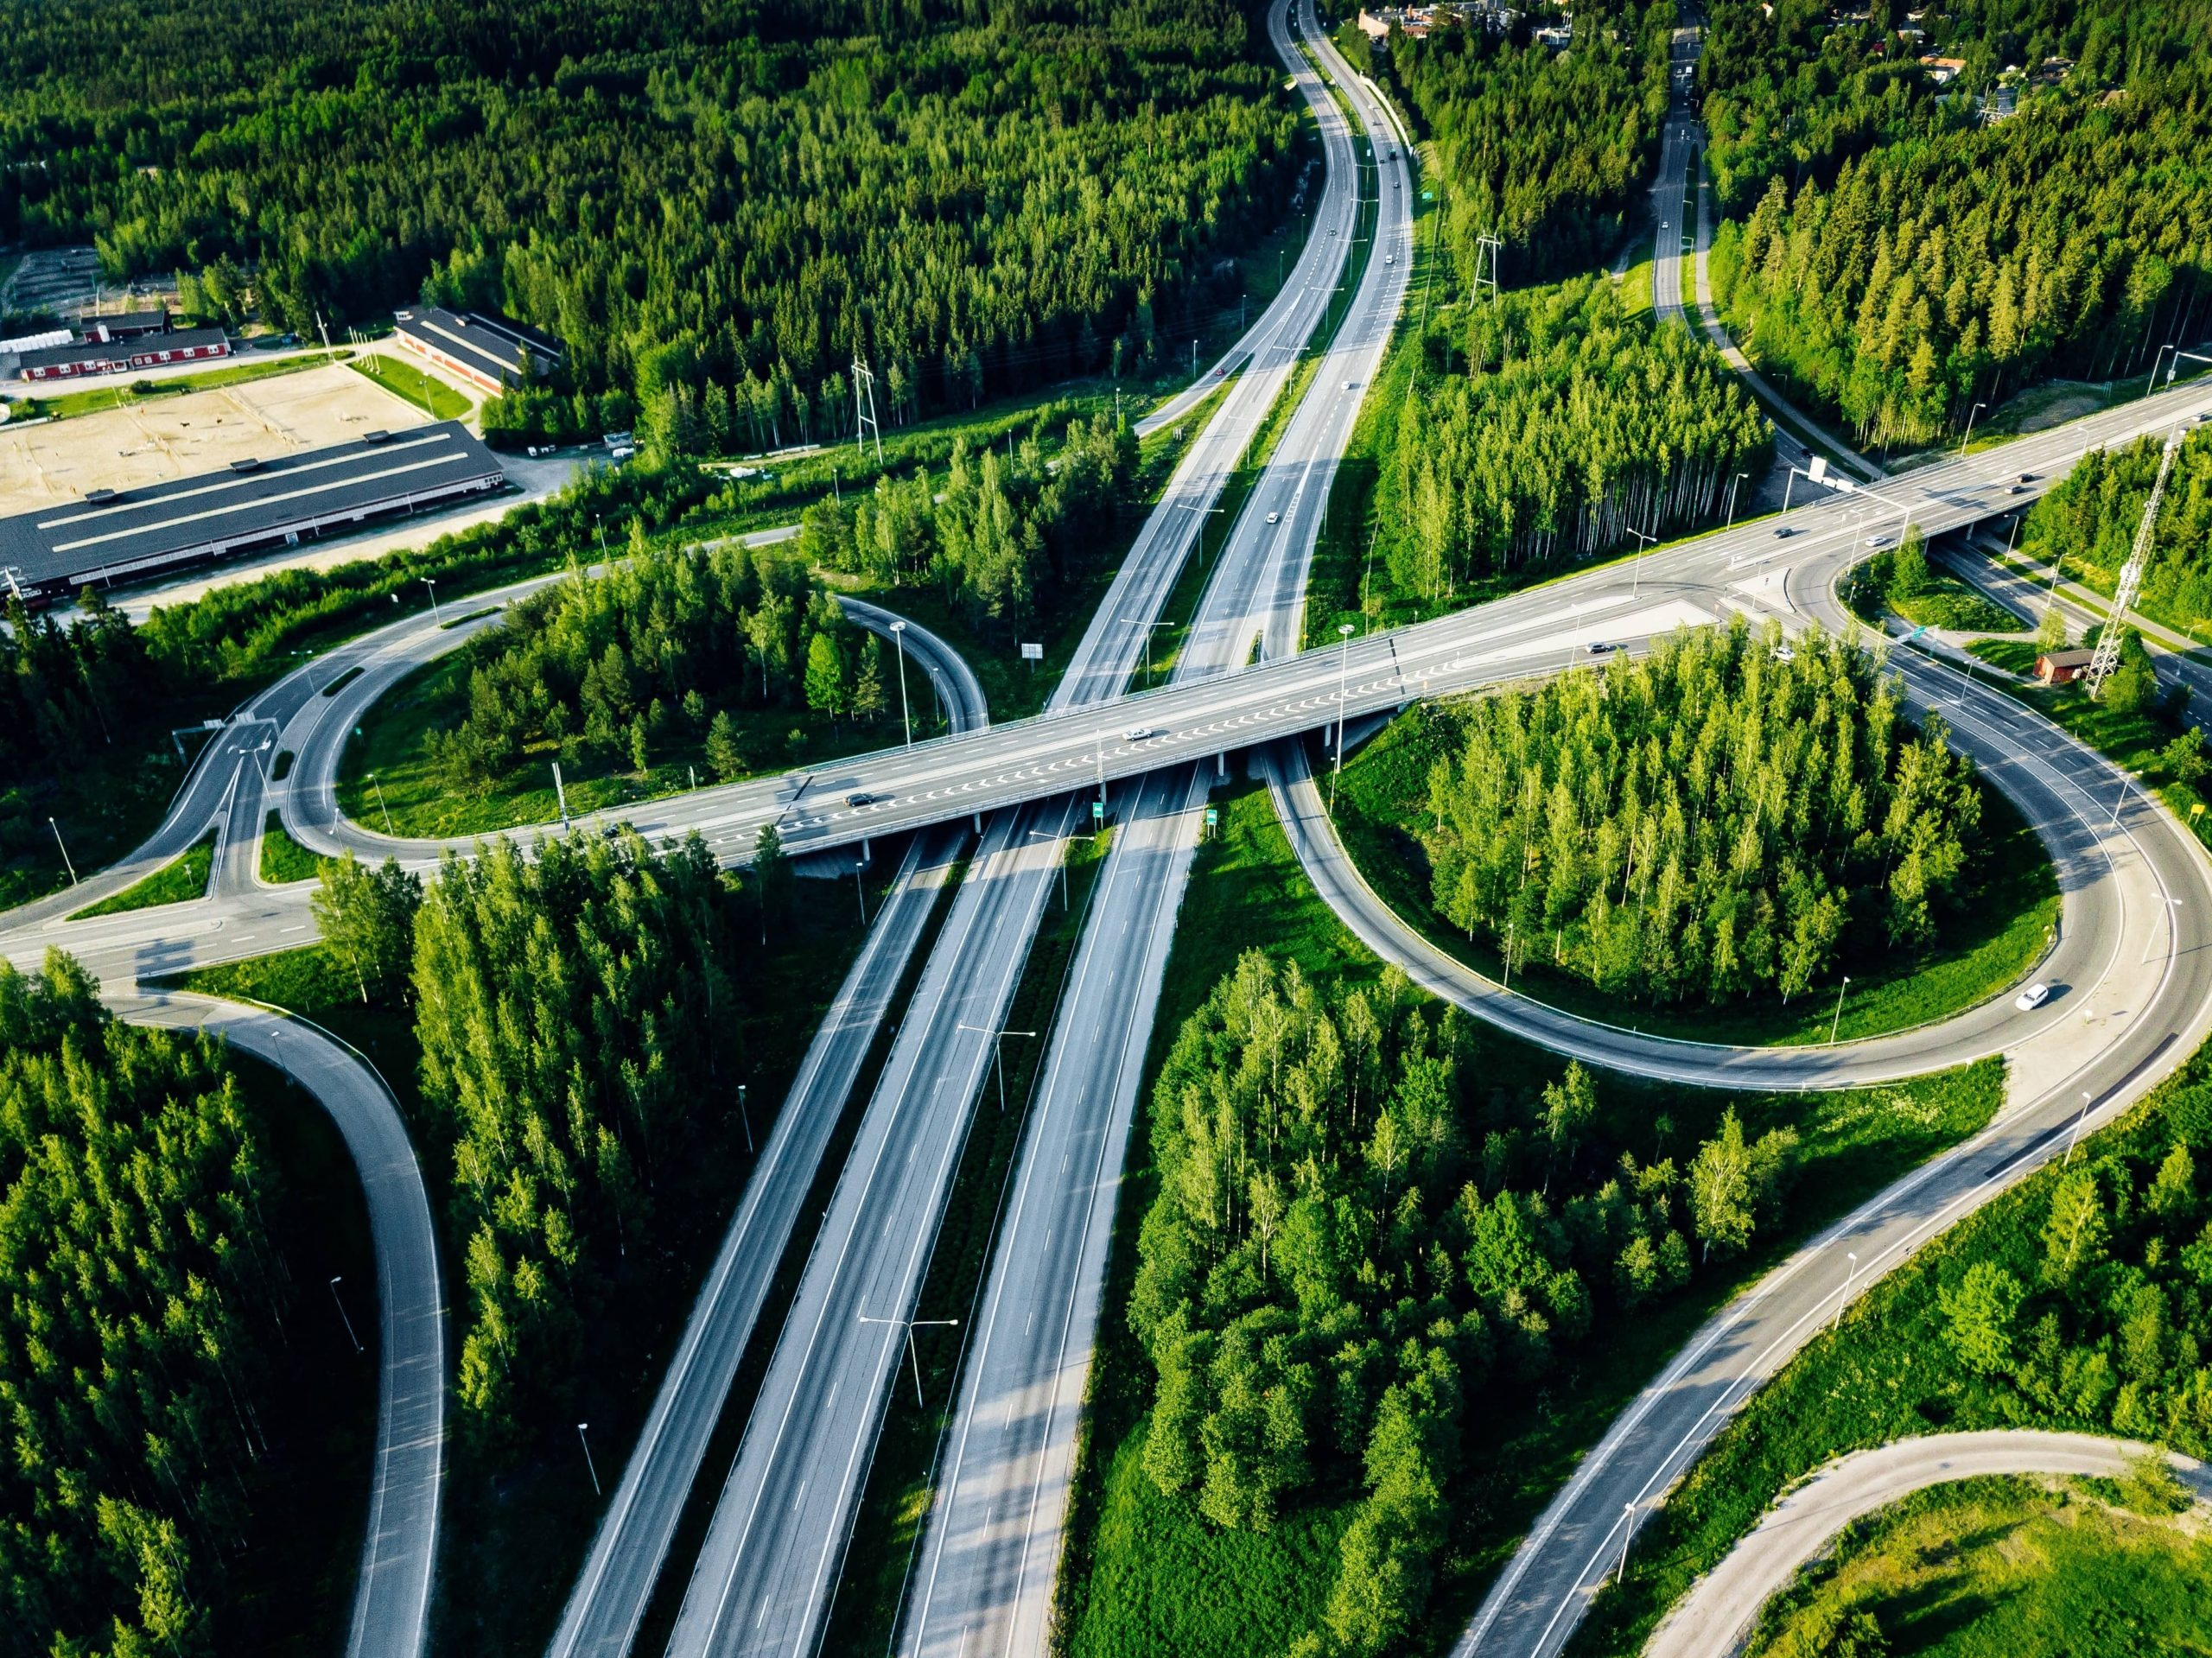 aerial-view-of-highway-and-overpass-with-green-woo-HLC5WBA-1-scaled.jpg